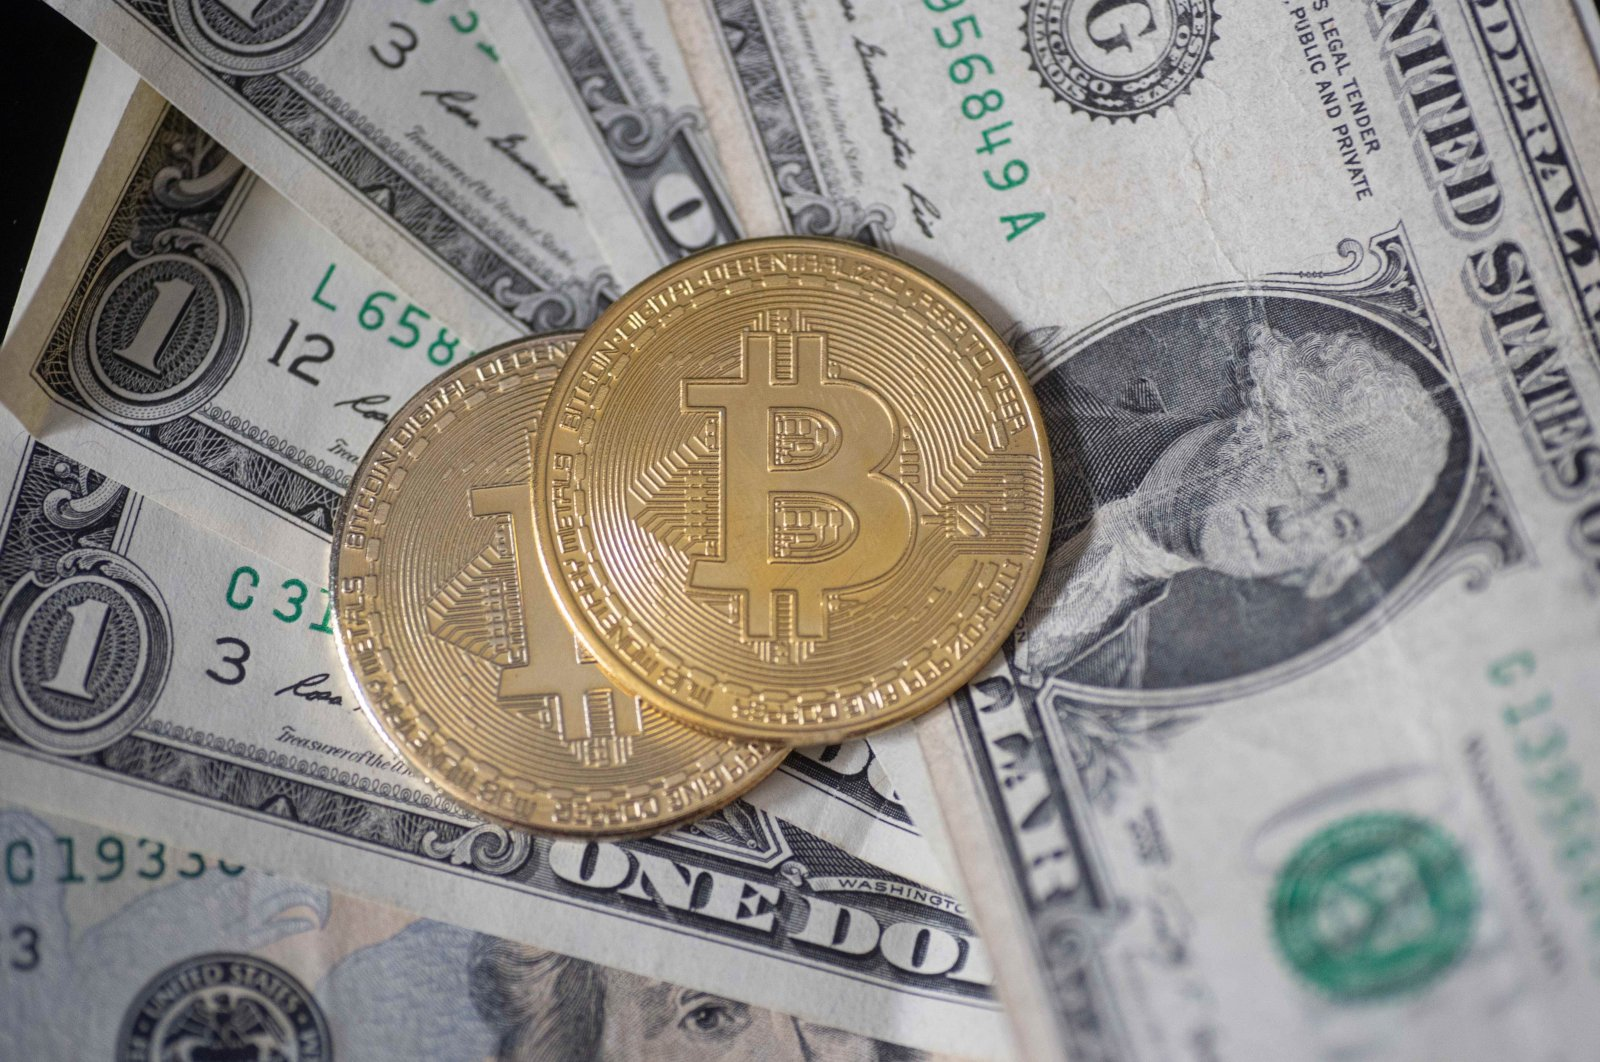 Visual representations of the digital cryptocurrency Bitcoin with the U.S. dollar bill, Thessaloniki, Greece, July 23, 2021. (Photo by Getty Images)